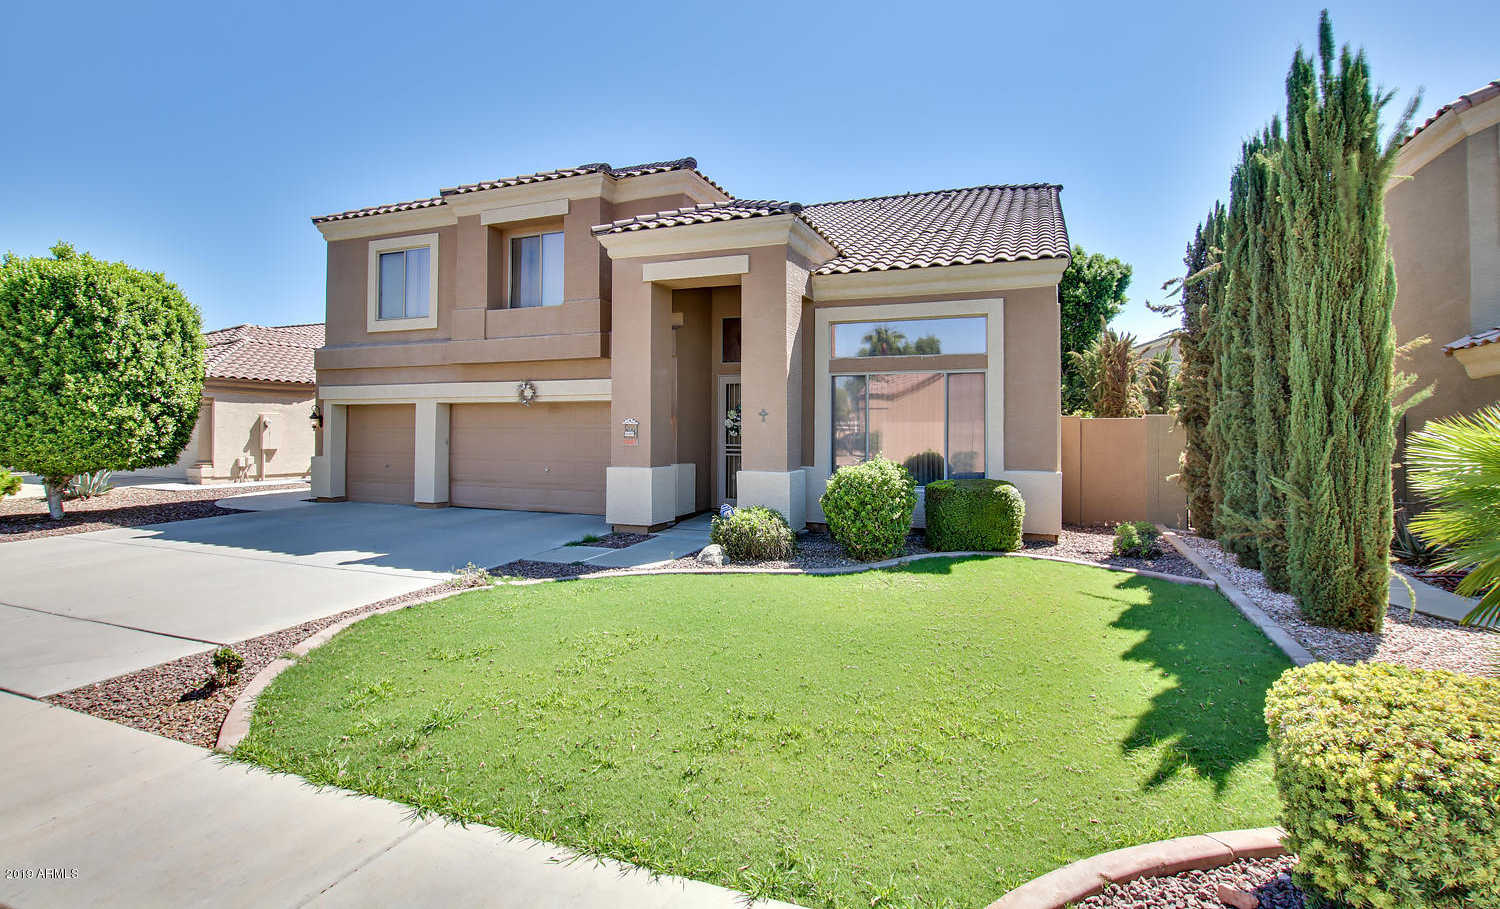 $425,000 - 4Br/3Ba - Home for Sale in Touchstone 2, Glendale